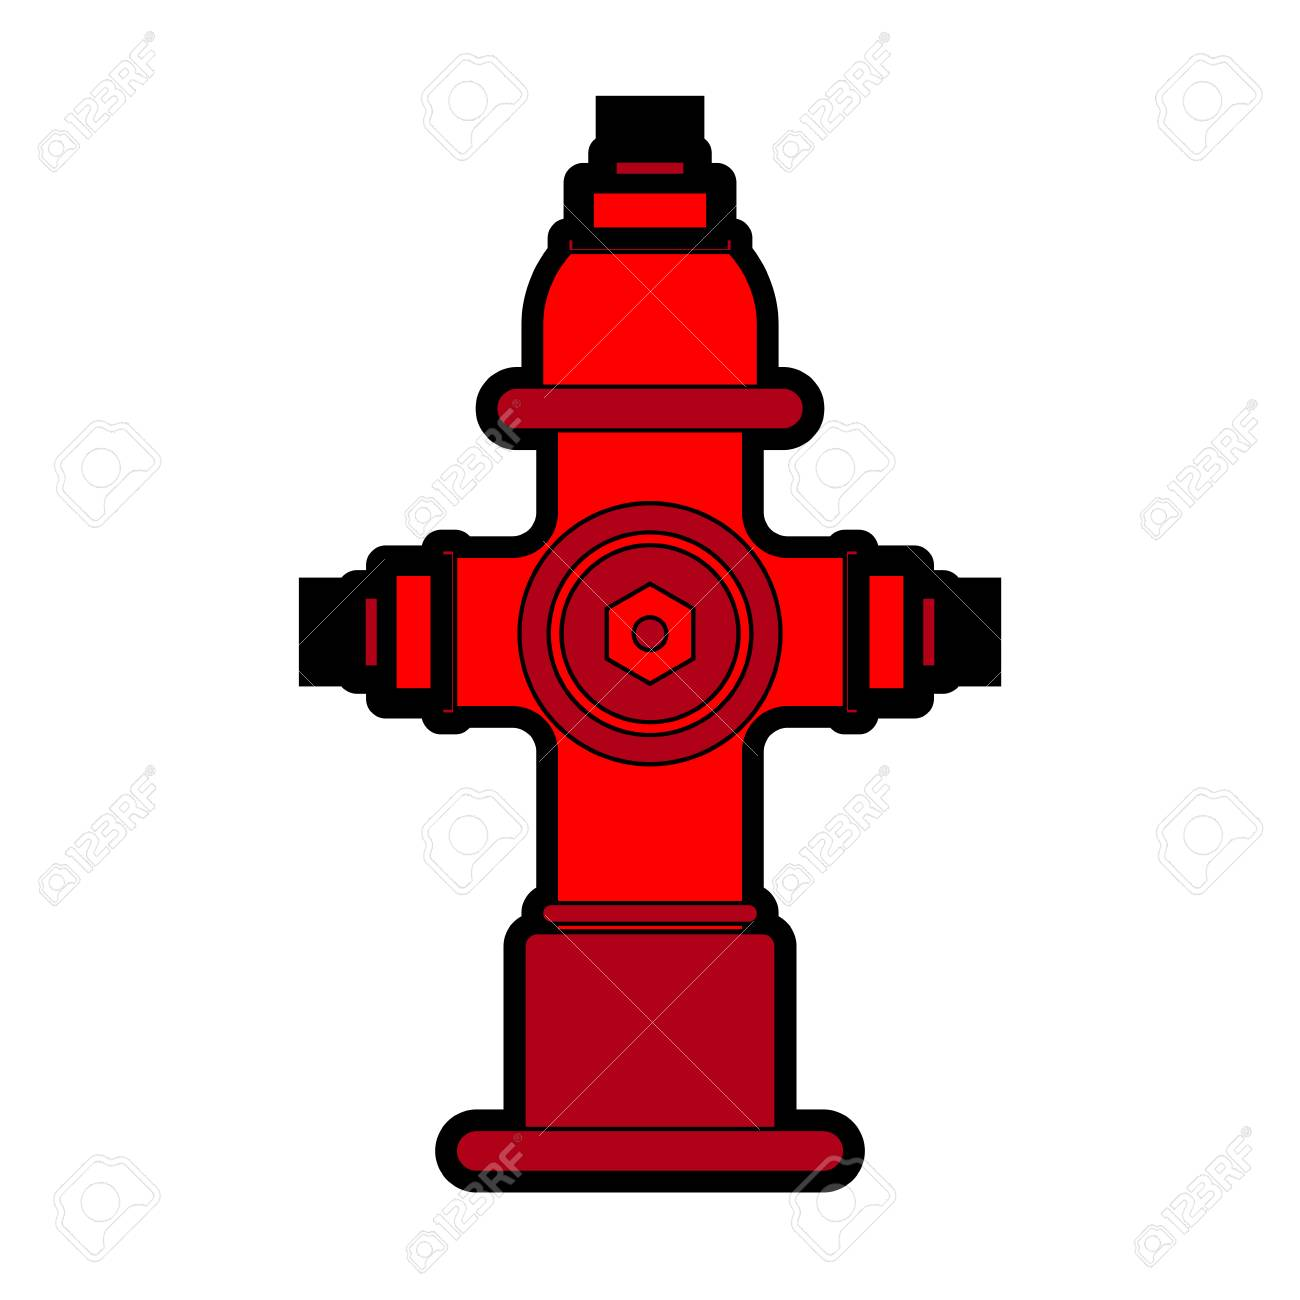 Fire Hydrant Isolated Red Fireplug Vector Illustration Royalty Free